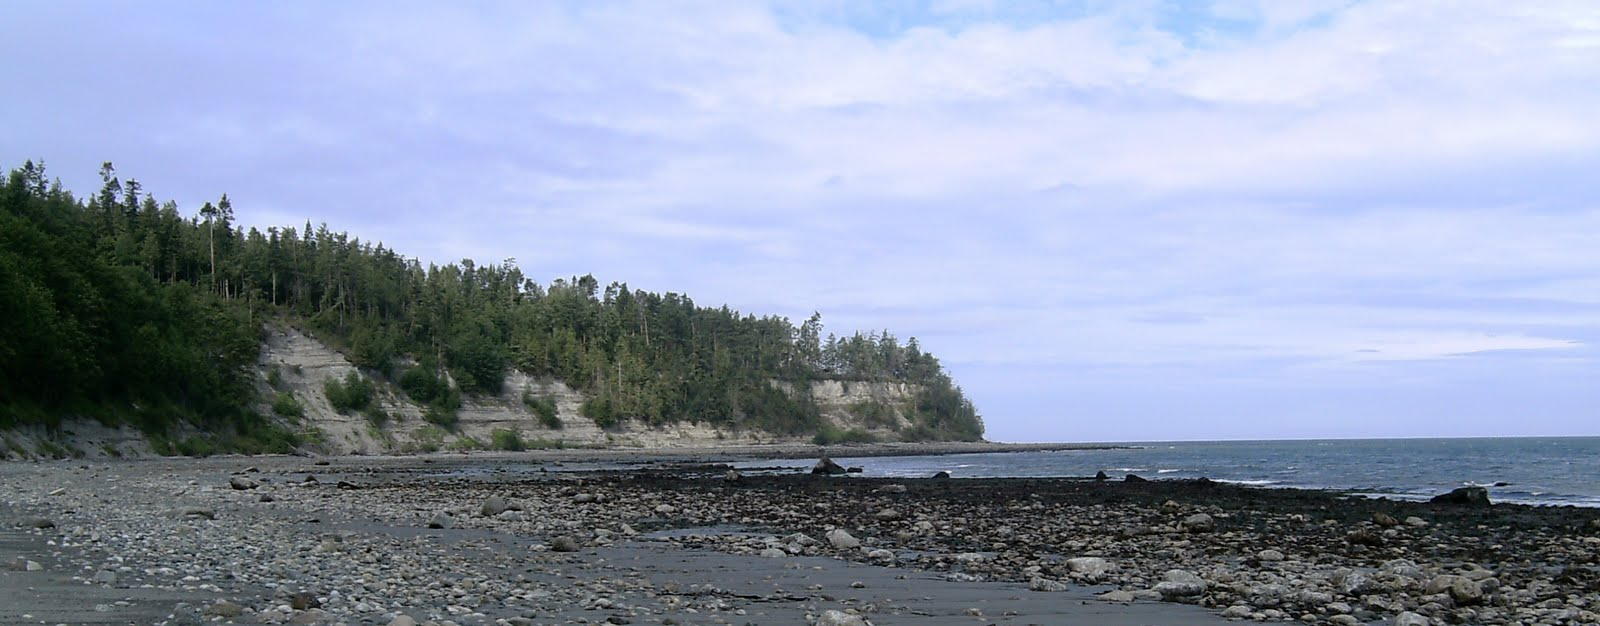 North Beach Port Townsend The Best Beaches In World